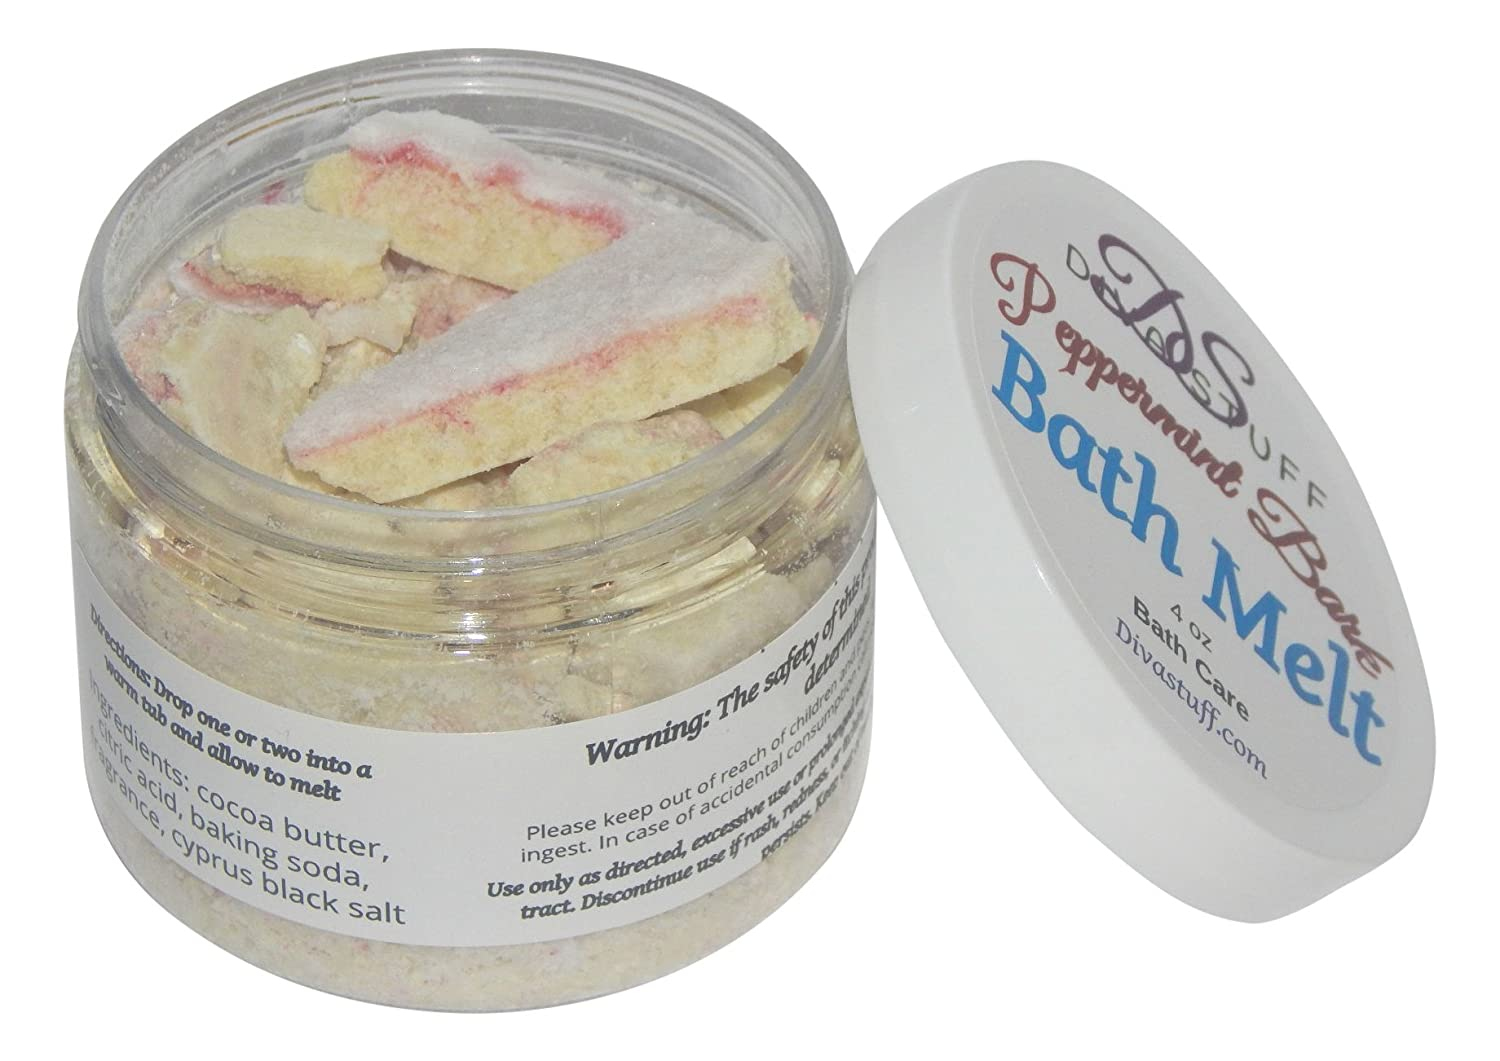 Peppermint Bark Bath Melts, Skin Softening and Great Smelling, By Diva Stuff